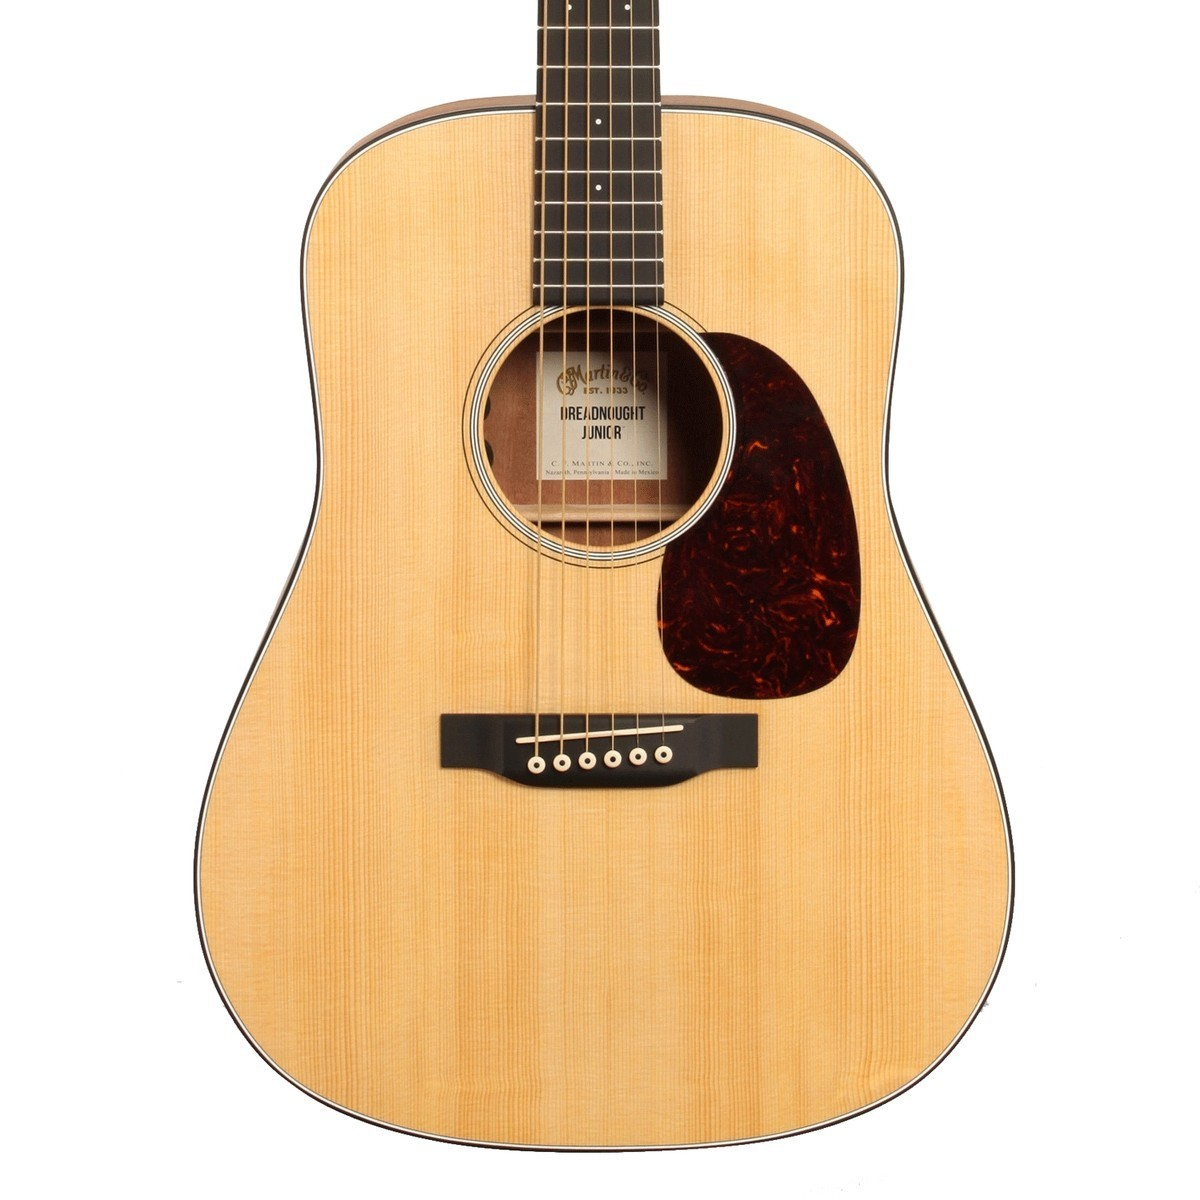 martin dreadnought junior electro acoustic guitar with free gifts at. Black Bedroom Furniture Sets. Home Design Ideas